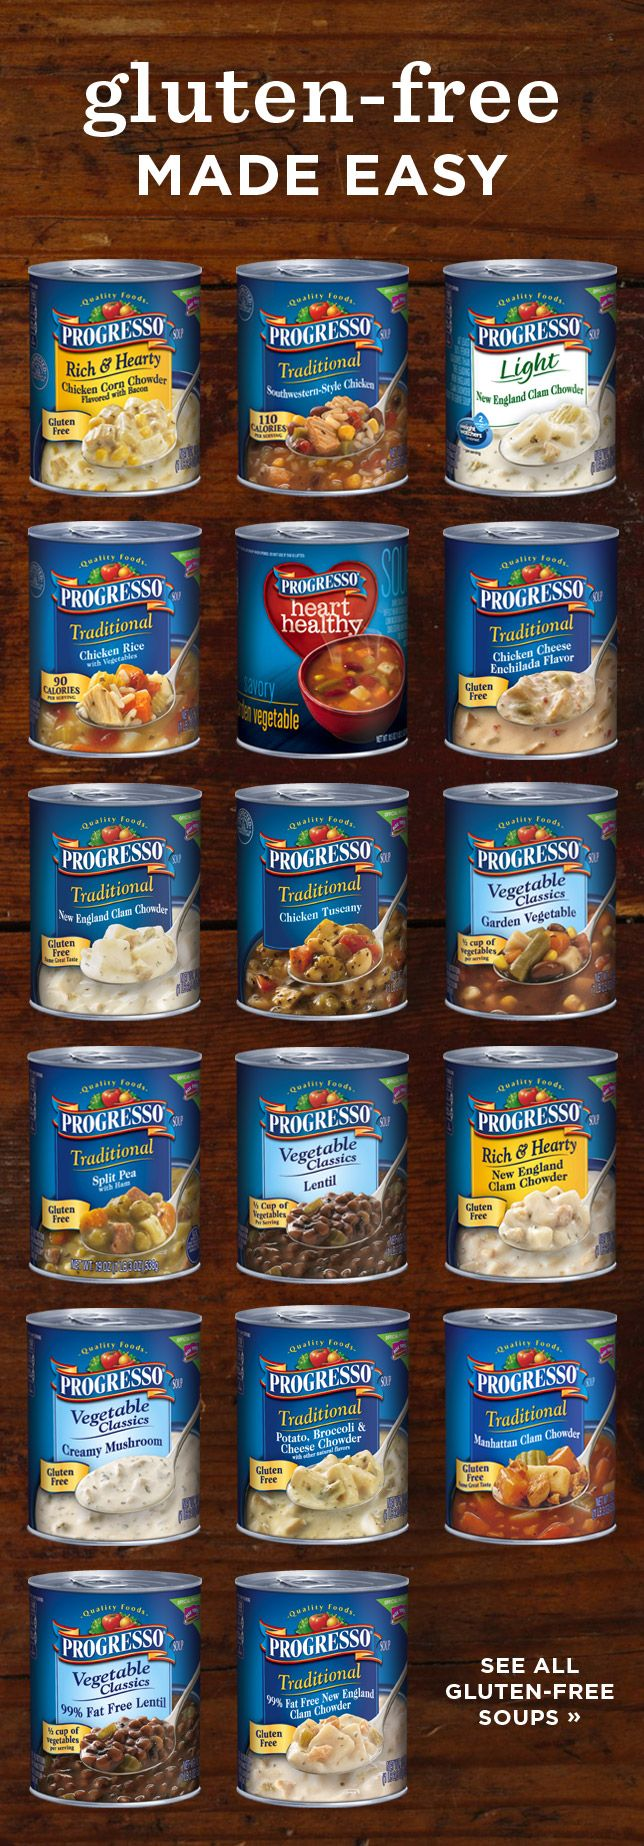 Progresso helps make eating gluten-free easy and delicious! Check out our variety of gluten-free soup flavors.